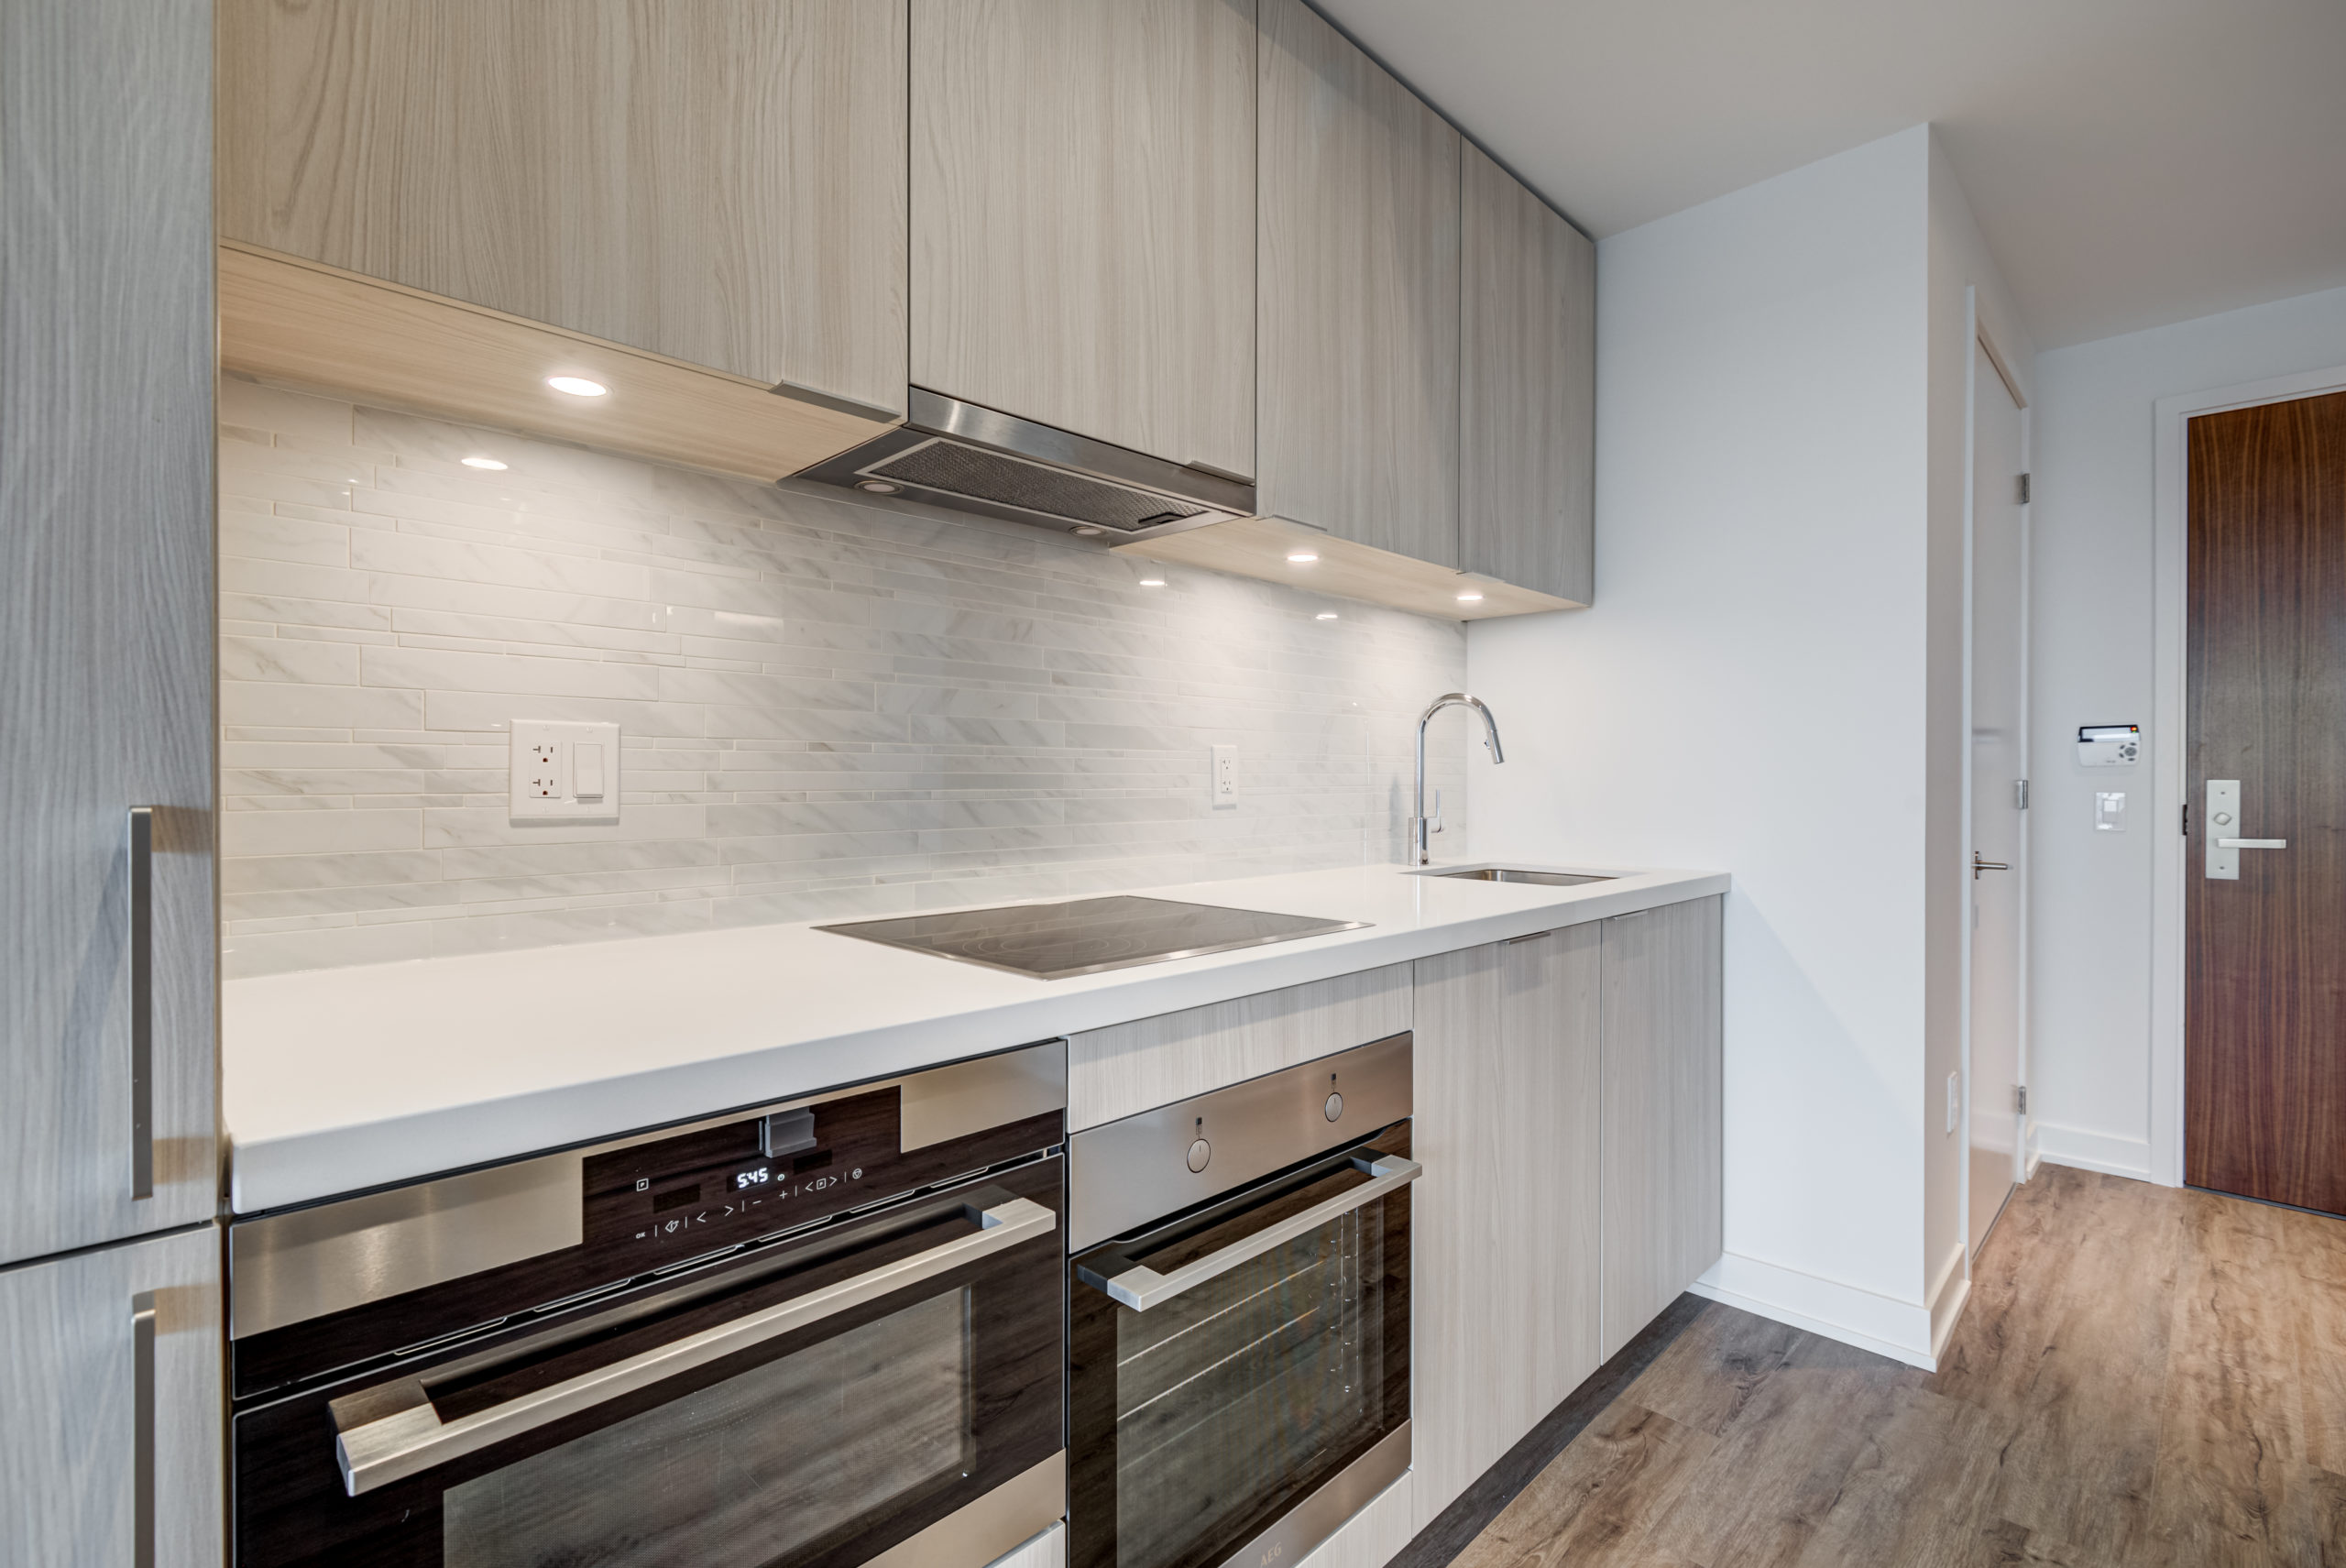 Condo kitchen with white counters, large cabinets with lights and glazed backsplash.